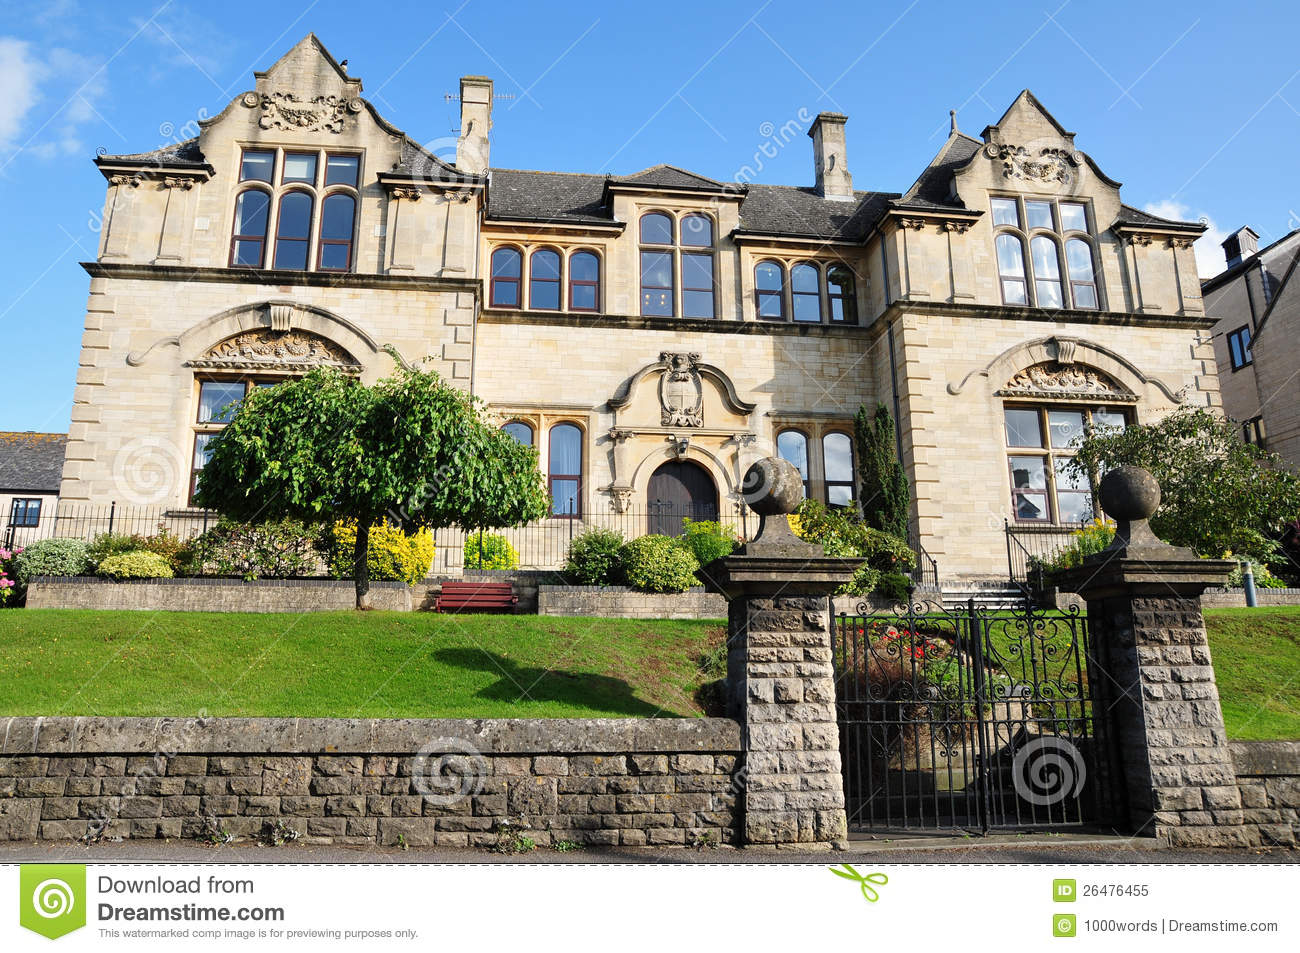 Victorian Mansion Royalty Free Stock Photo - Image: 26476455